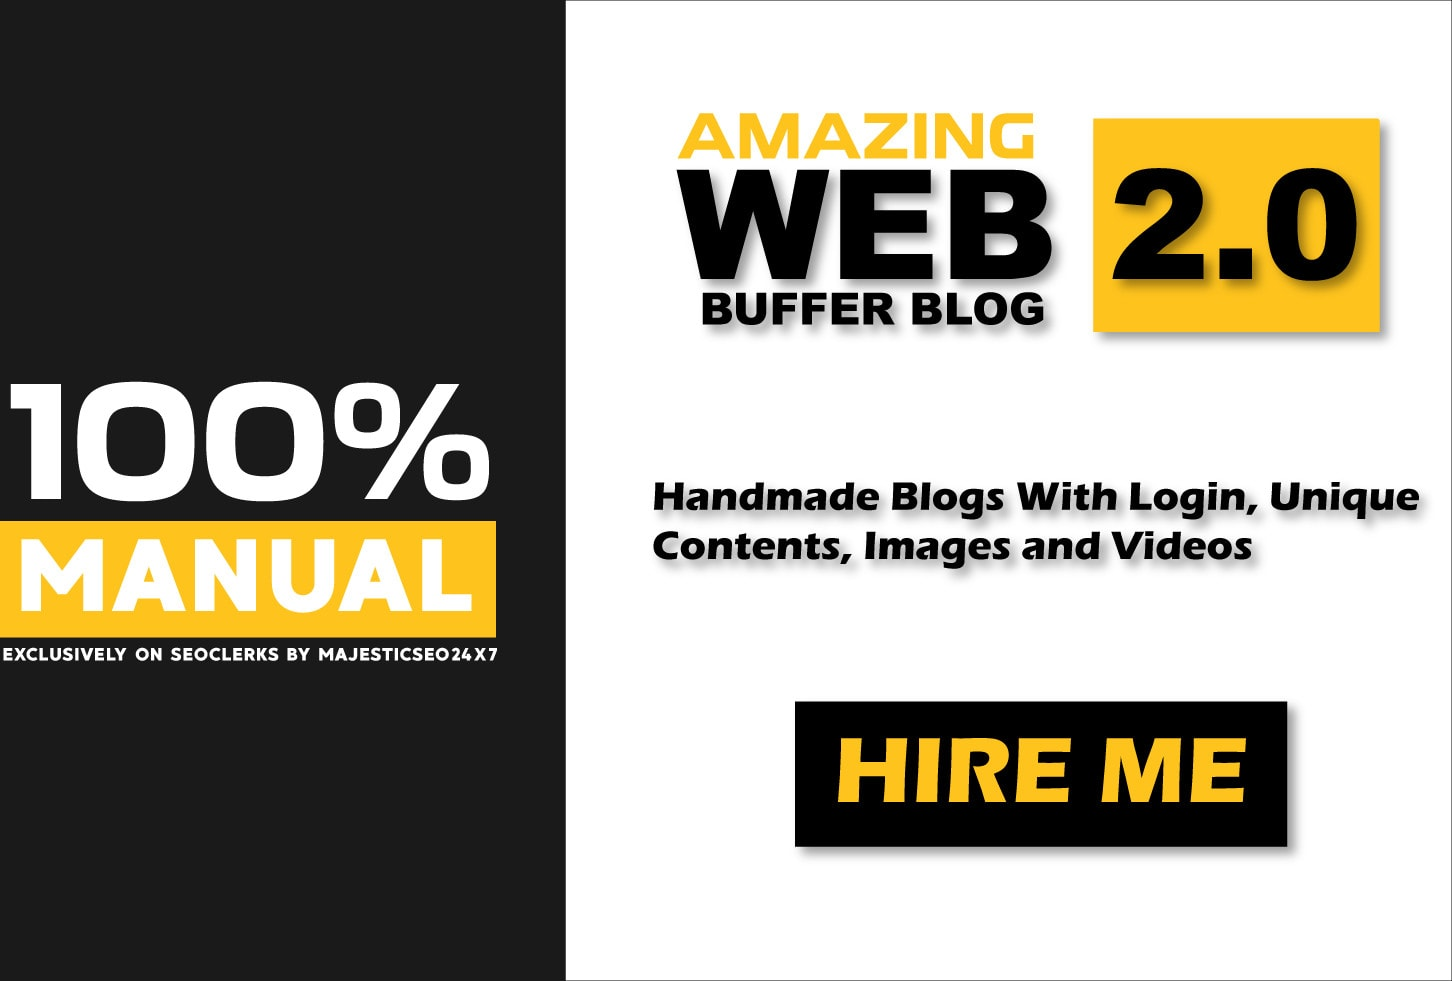 create 25 amazing web 2 0 blog properties with login details